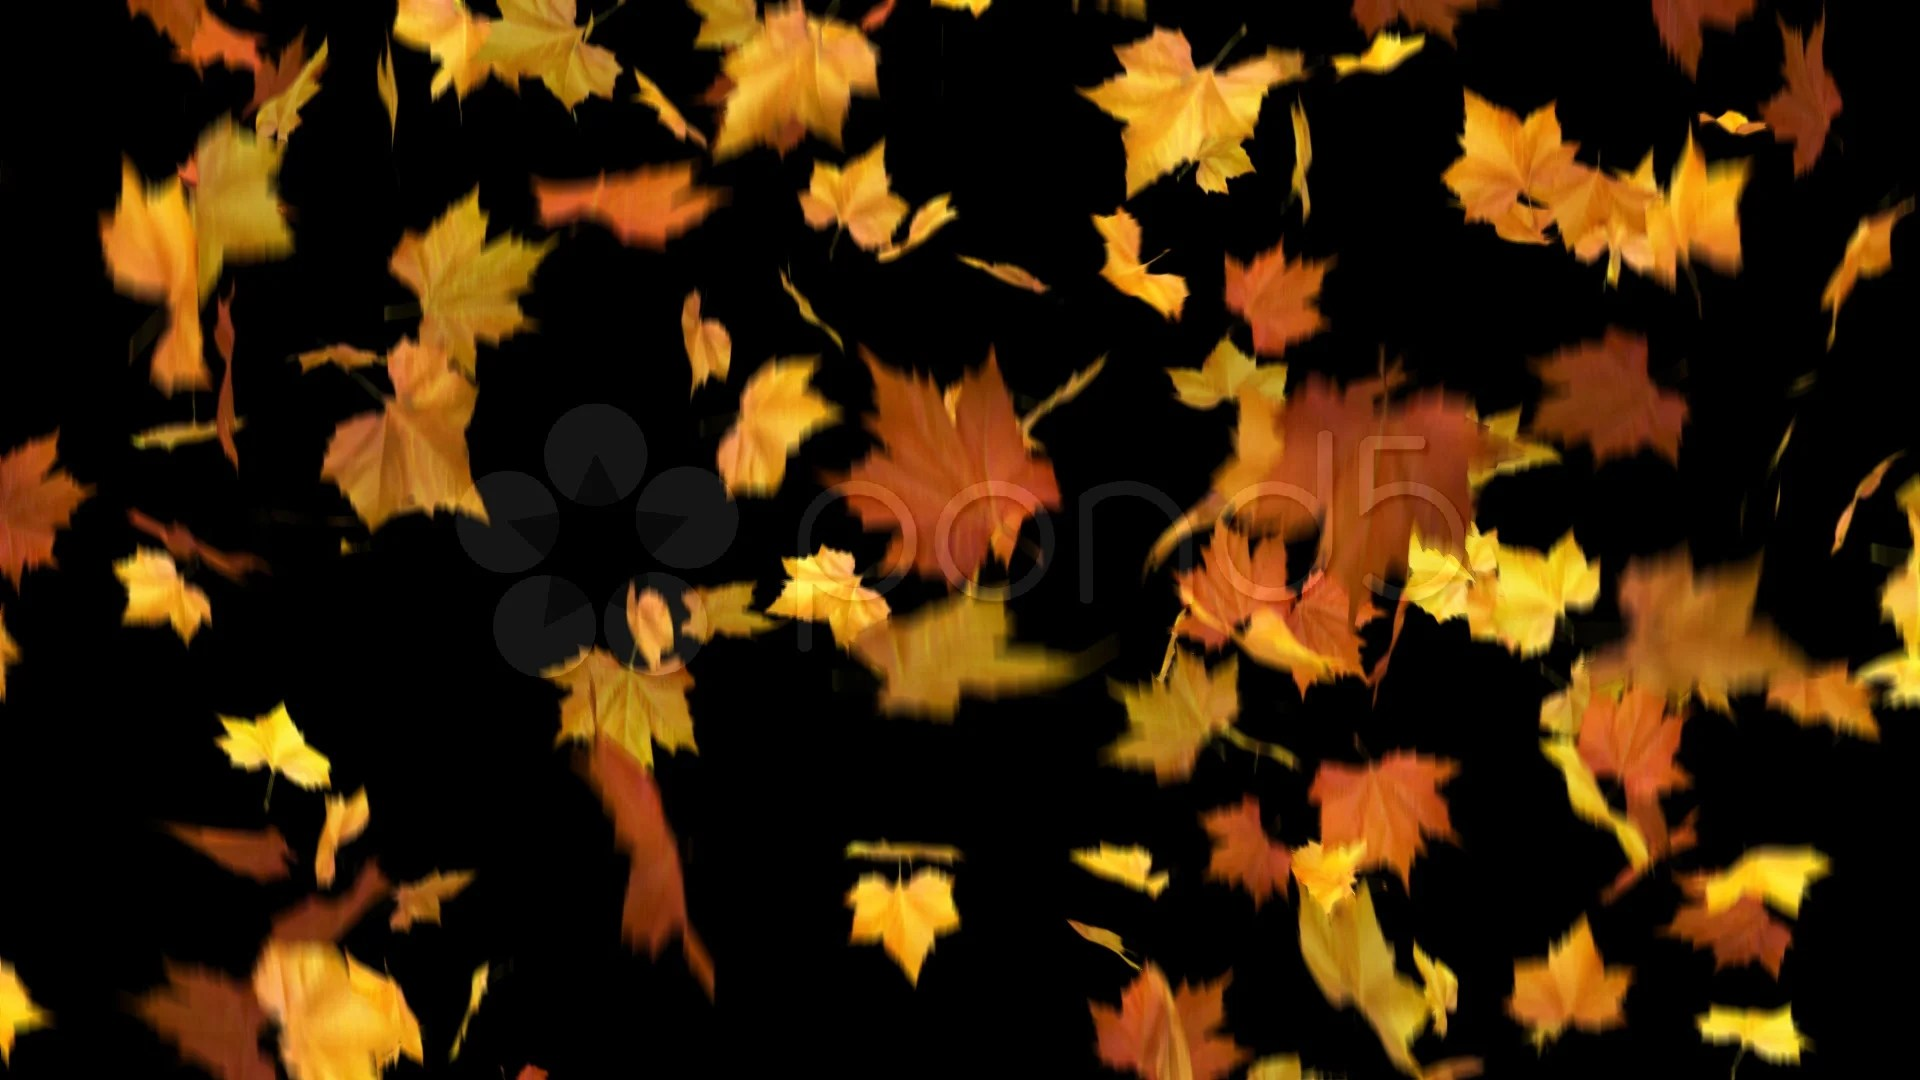 Free Animated Falling Leaves Wallpaper Falling Leaves Masked 3d Animation Loop Clip 715062